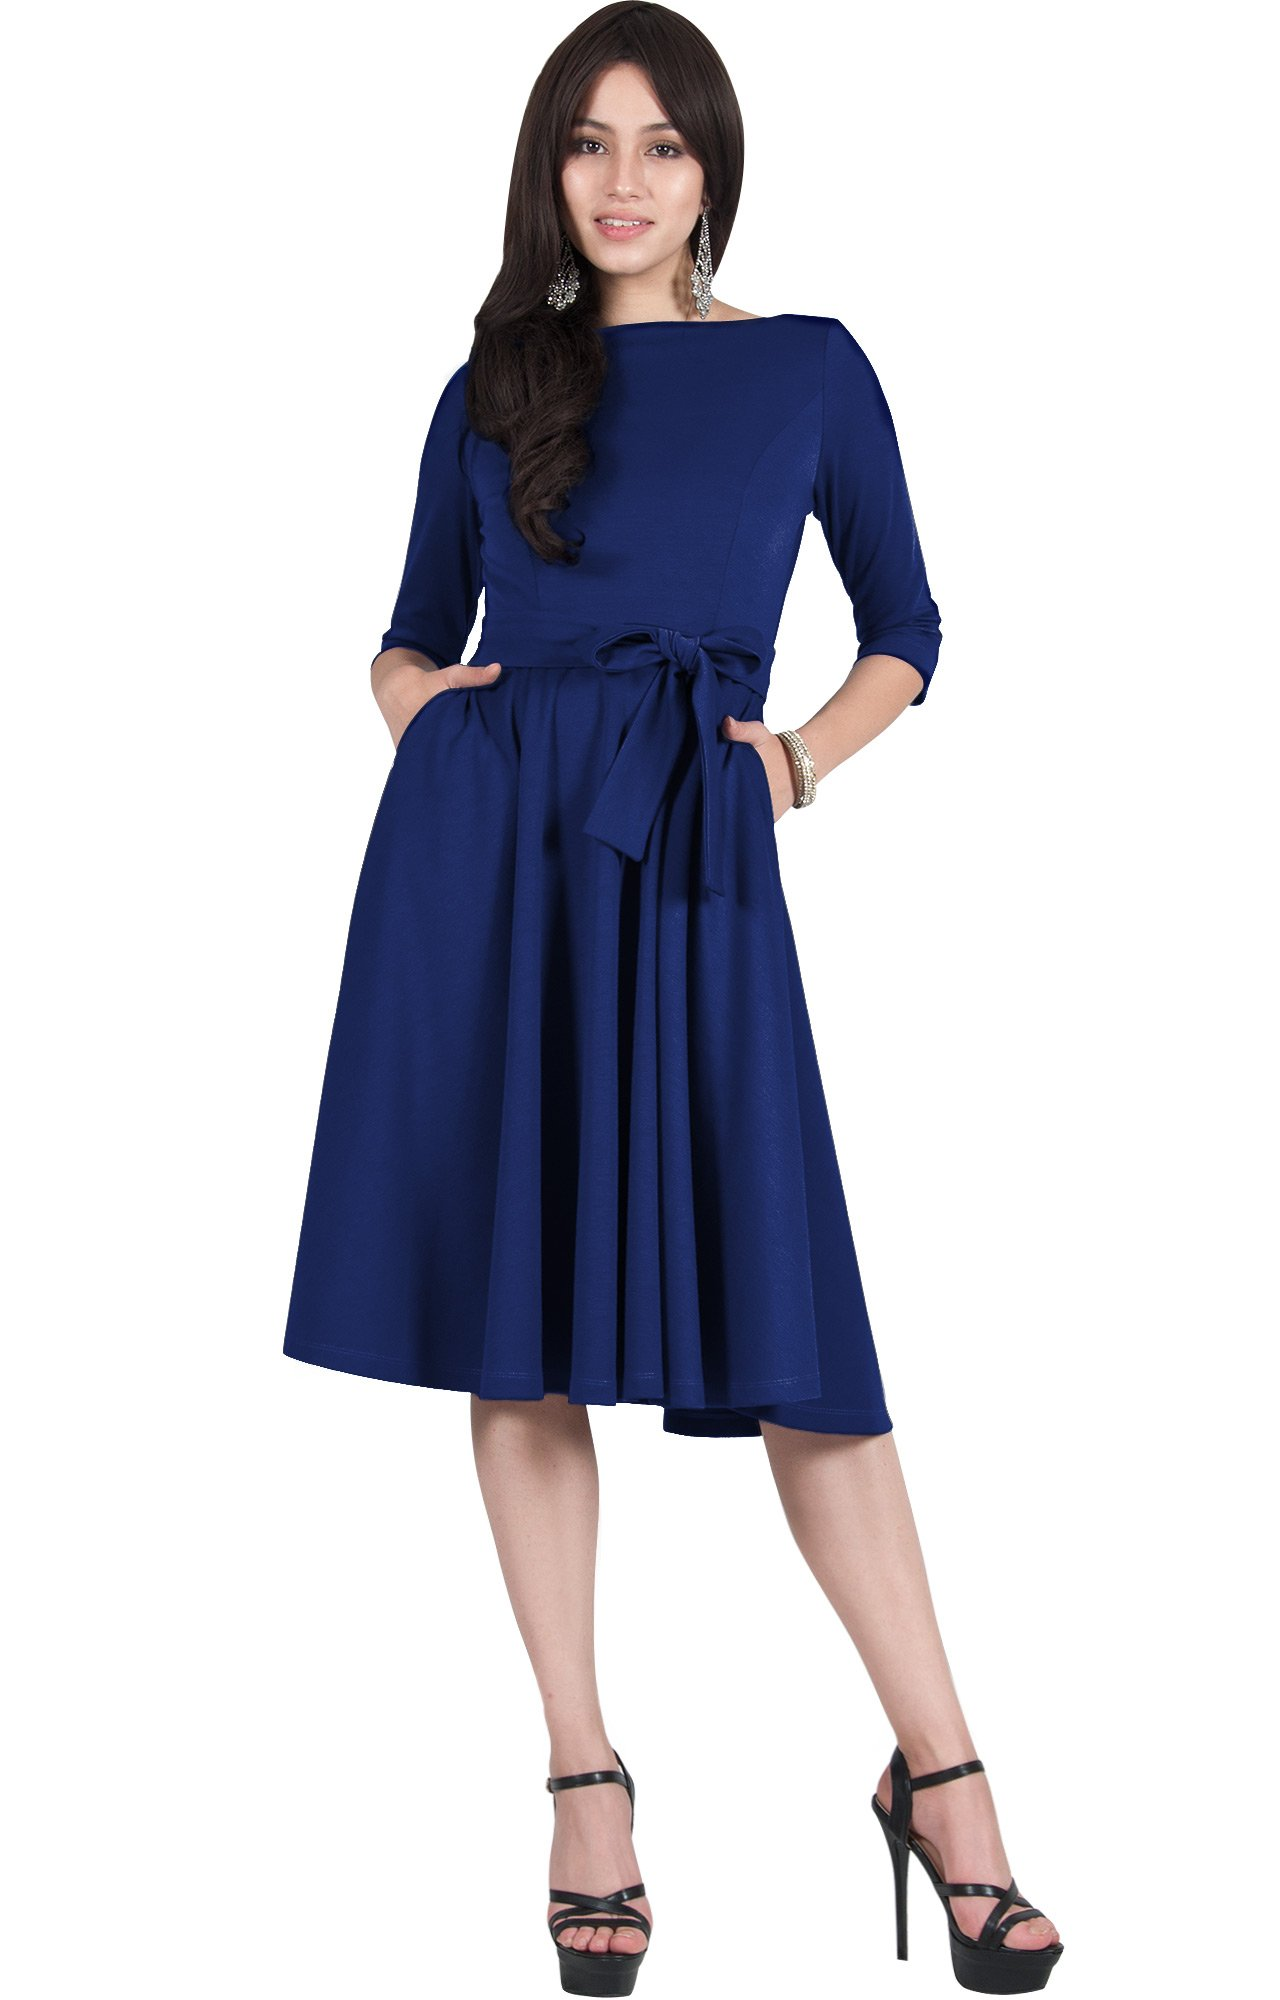 Viris Zamara Plus Size Womens 3/4 Sleeve Boat Neck with Belt Elegant Semi-Formal Pockets Work Pleated Flowy Office Knee Length Spring Summer Travel Midi Dress Dresses, Cobalt/Royal Blue 2XL 18-20